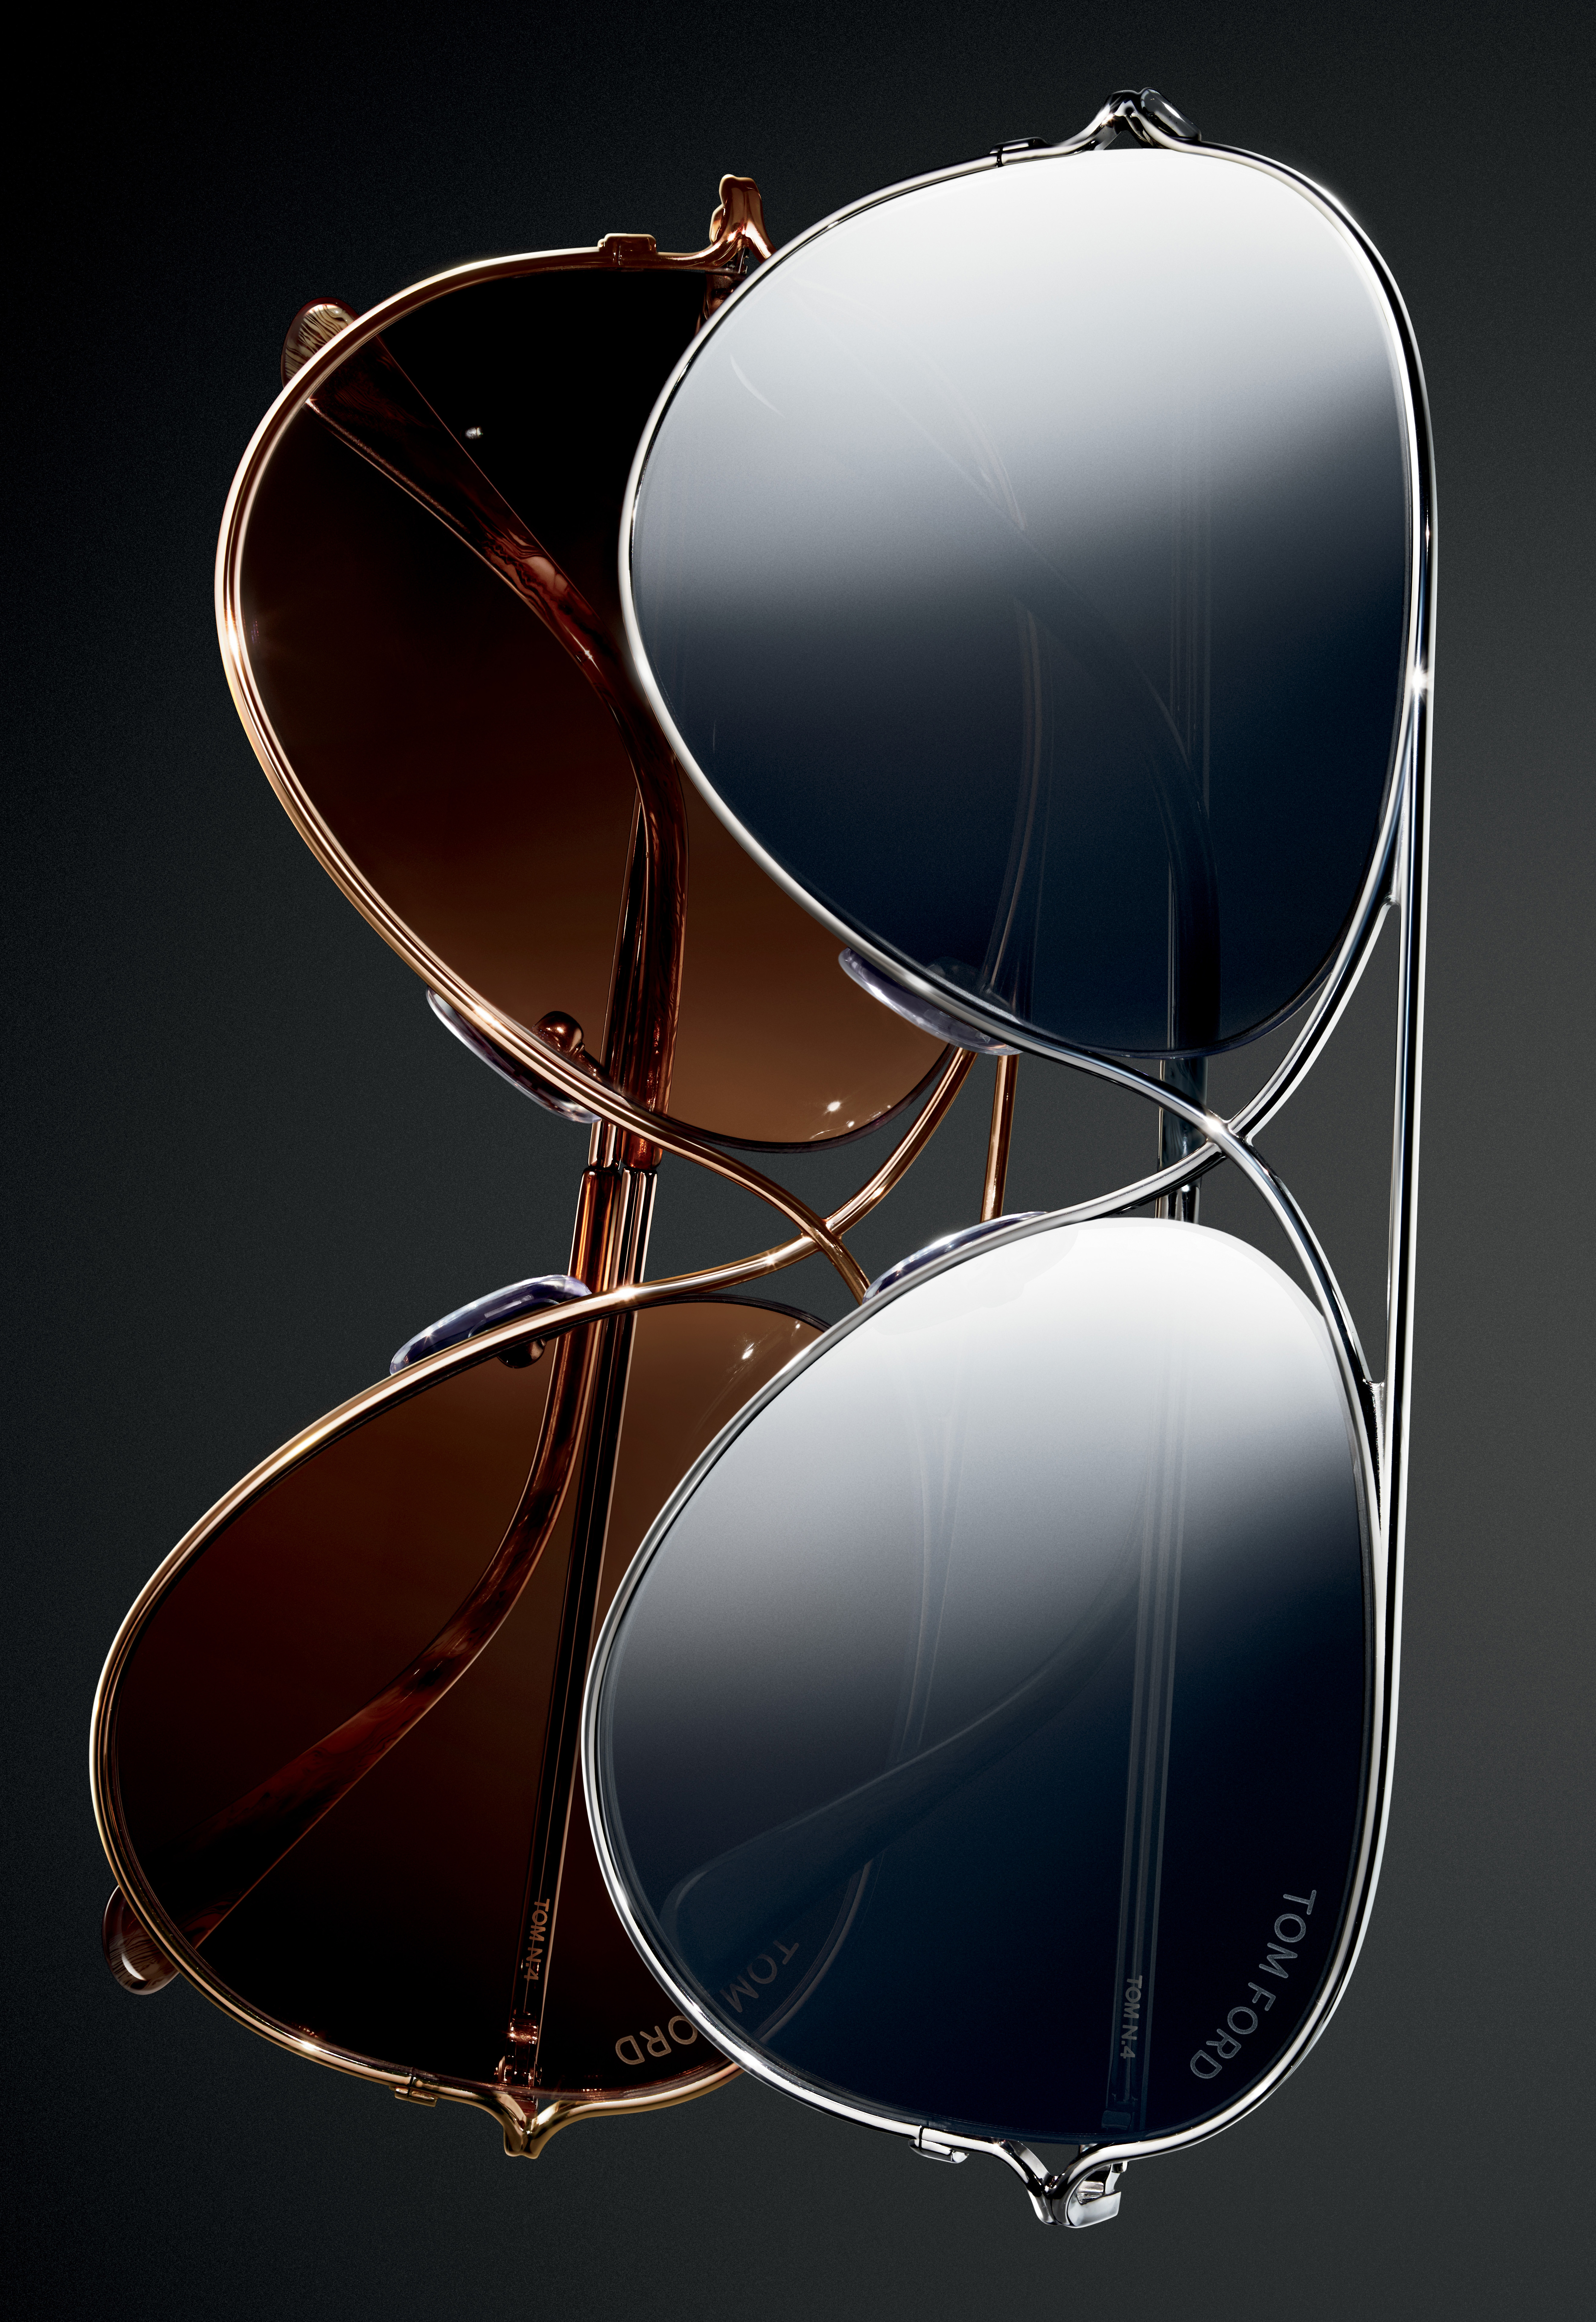 66c29c7ce92f Tom Ford Private Eyewear Collection (BT) COLLEZIONI